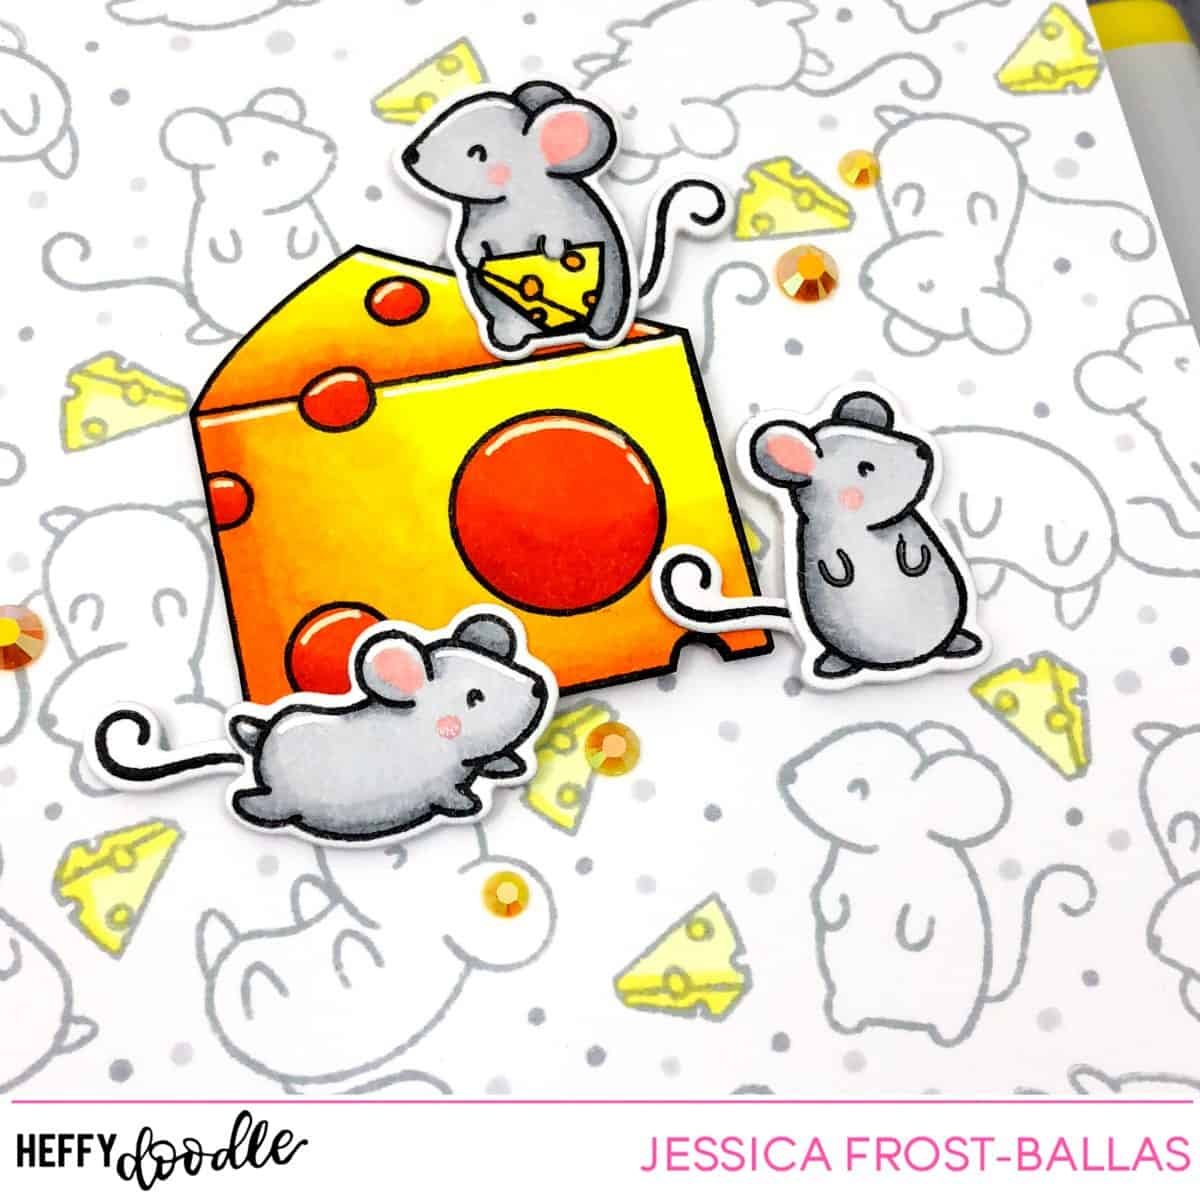 You Are Such a Gouda Friend by Jessica Frost-Ballas for Heffy Doodle